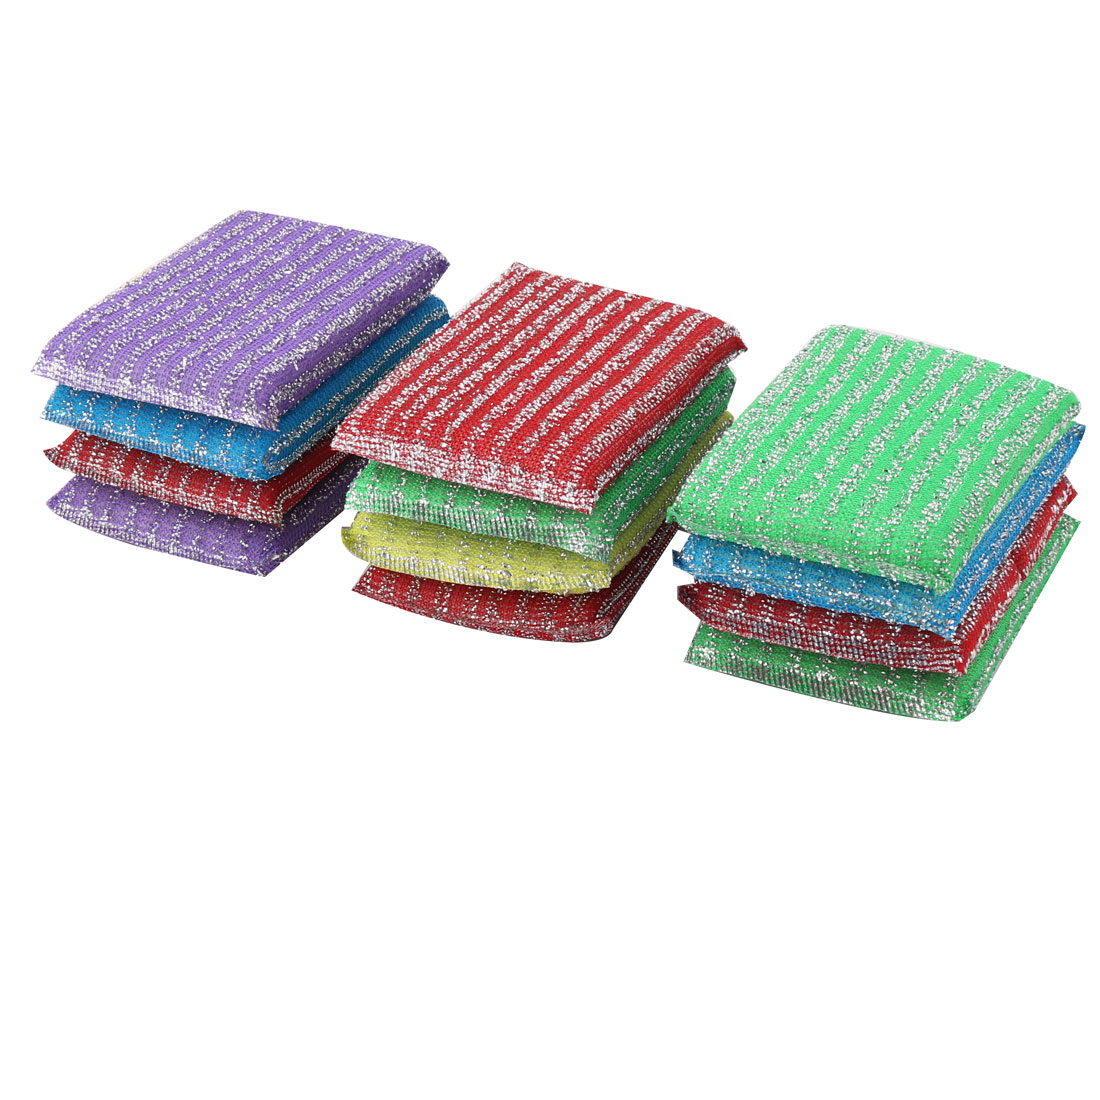 Apartment Bowl Dish Sponge Wash Scourer Scrubber Cleaning Cleaner Pads 12pcs